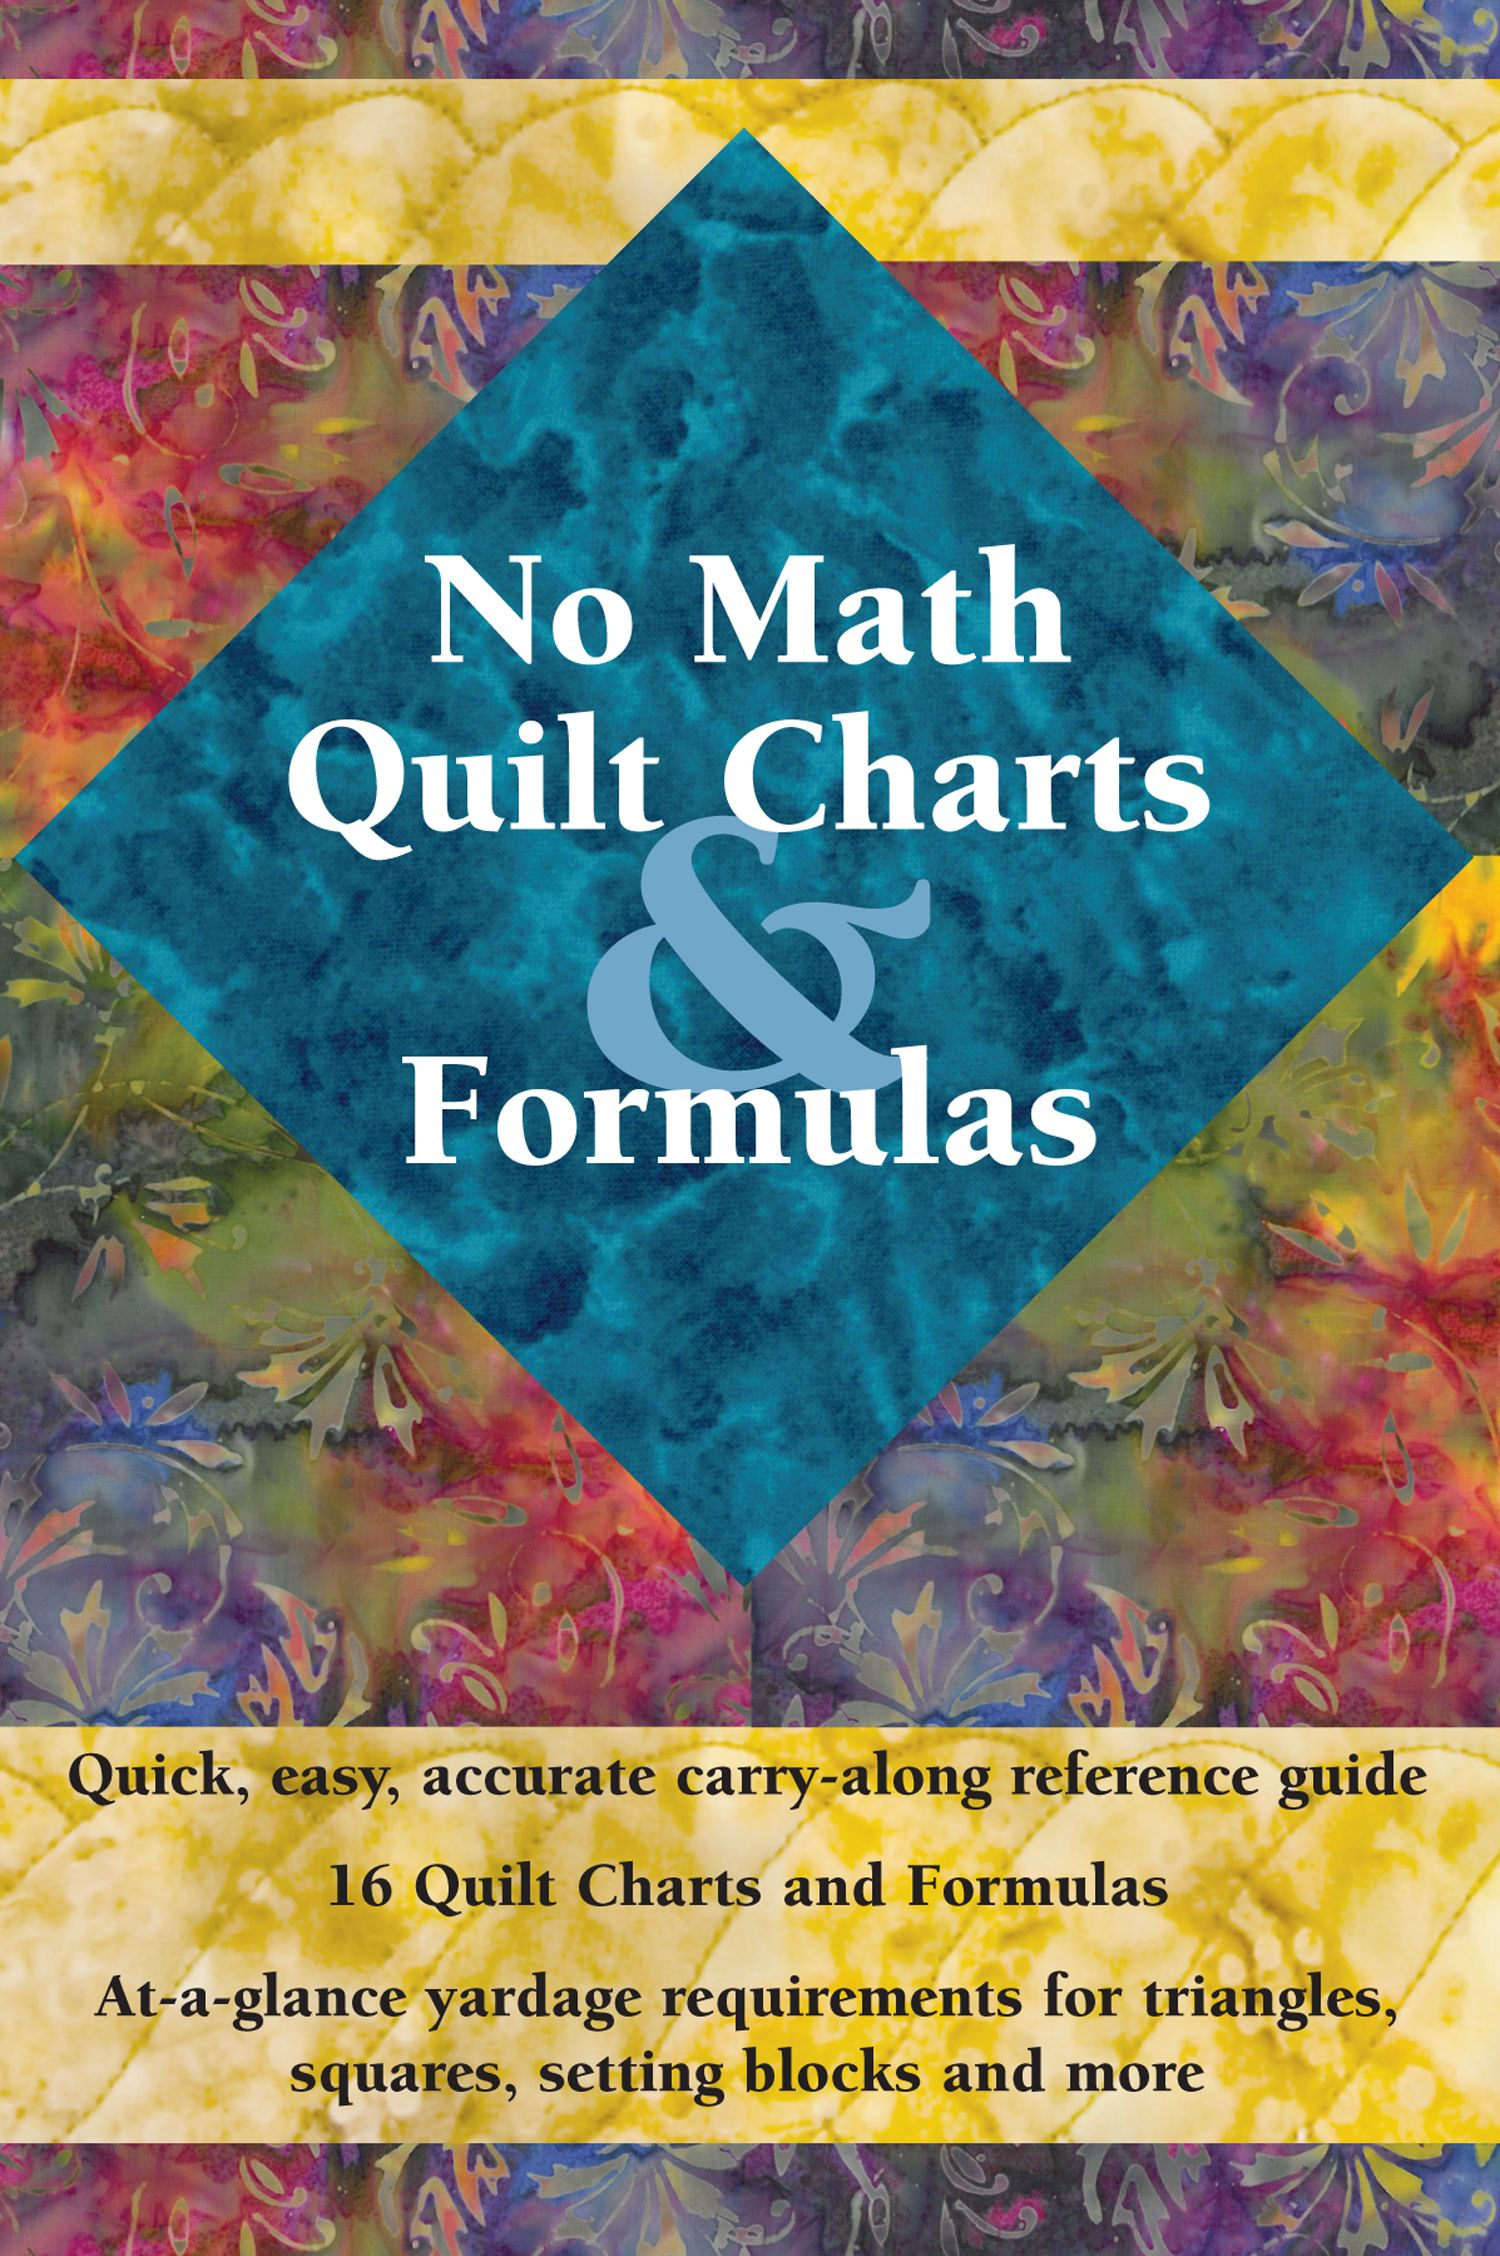 No Math Quilt Charts & Formulas Softcover A well